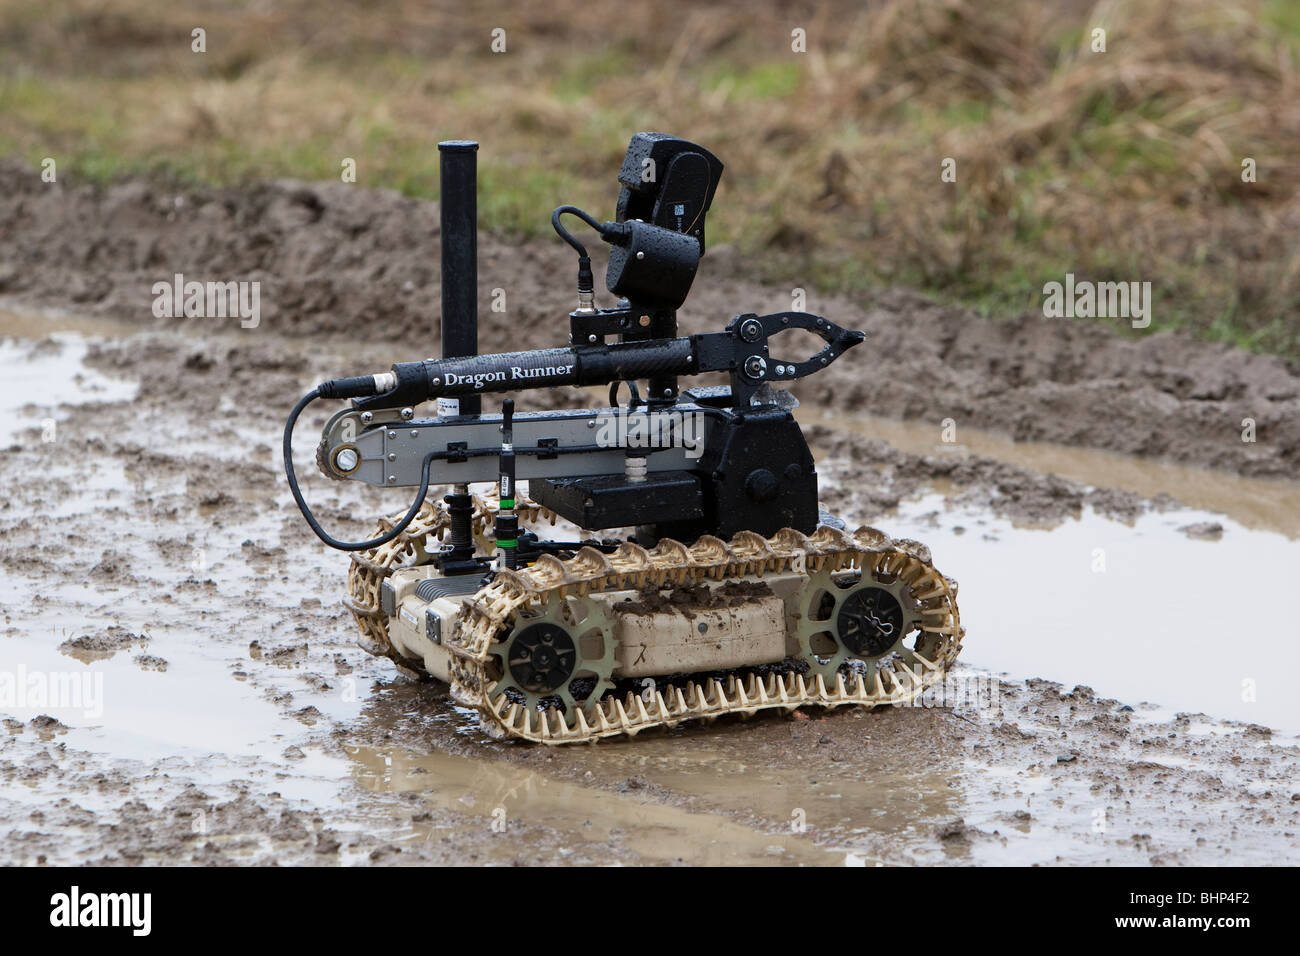 Remote controlled explosive detector used to detect IED's by the British Army in Afghanistan called a Dragon - Stock Image